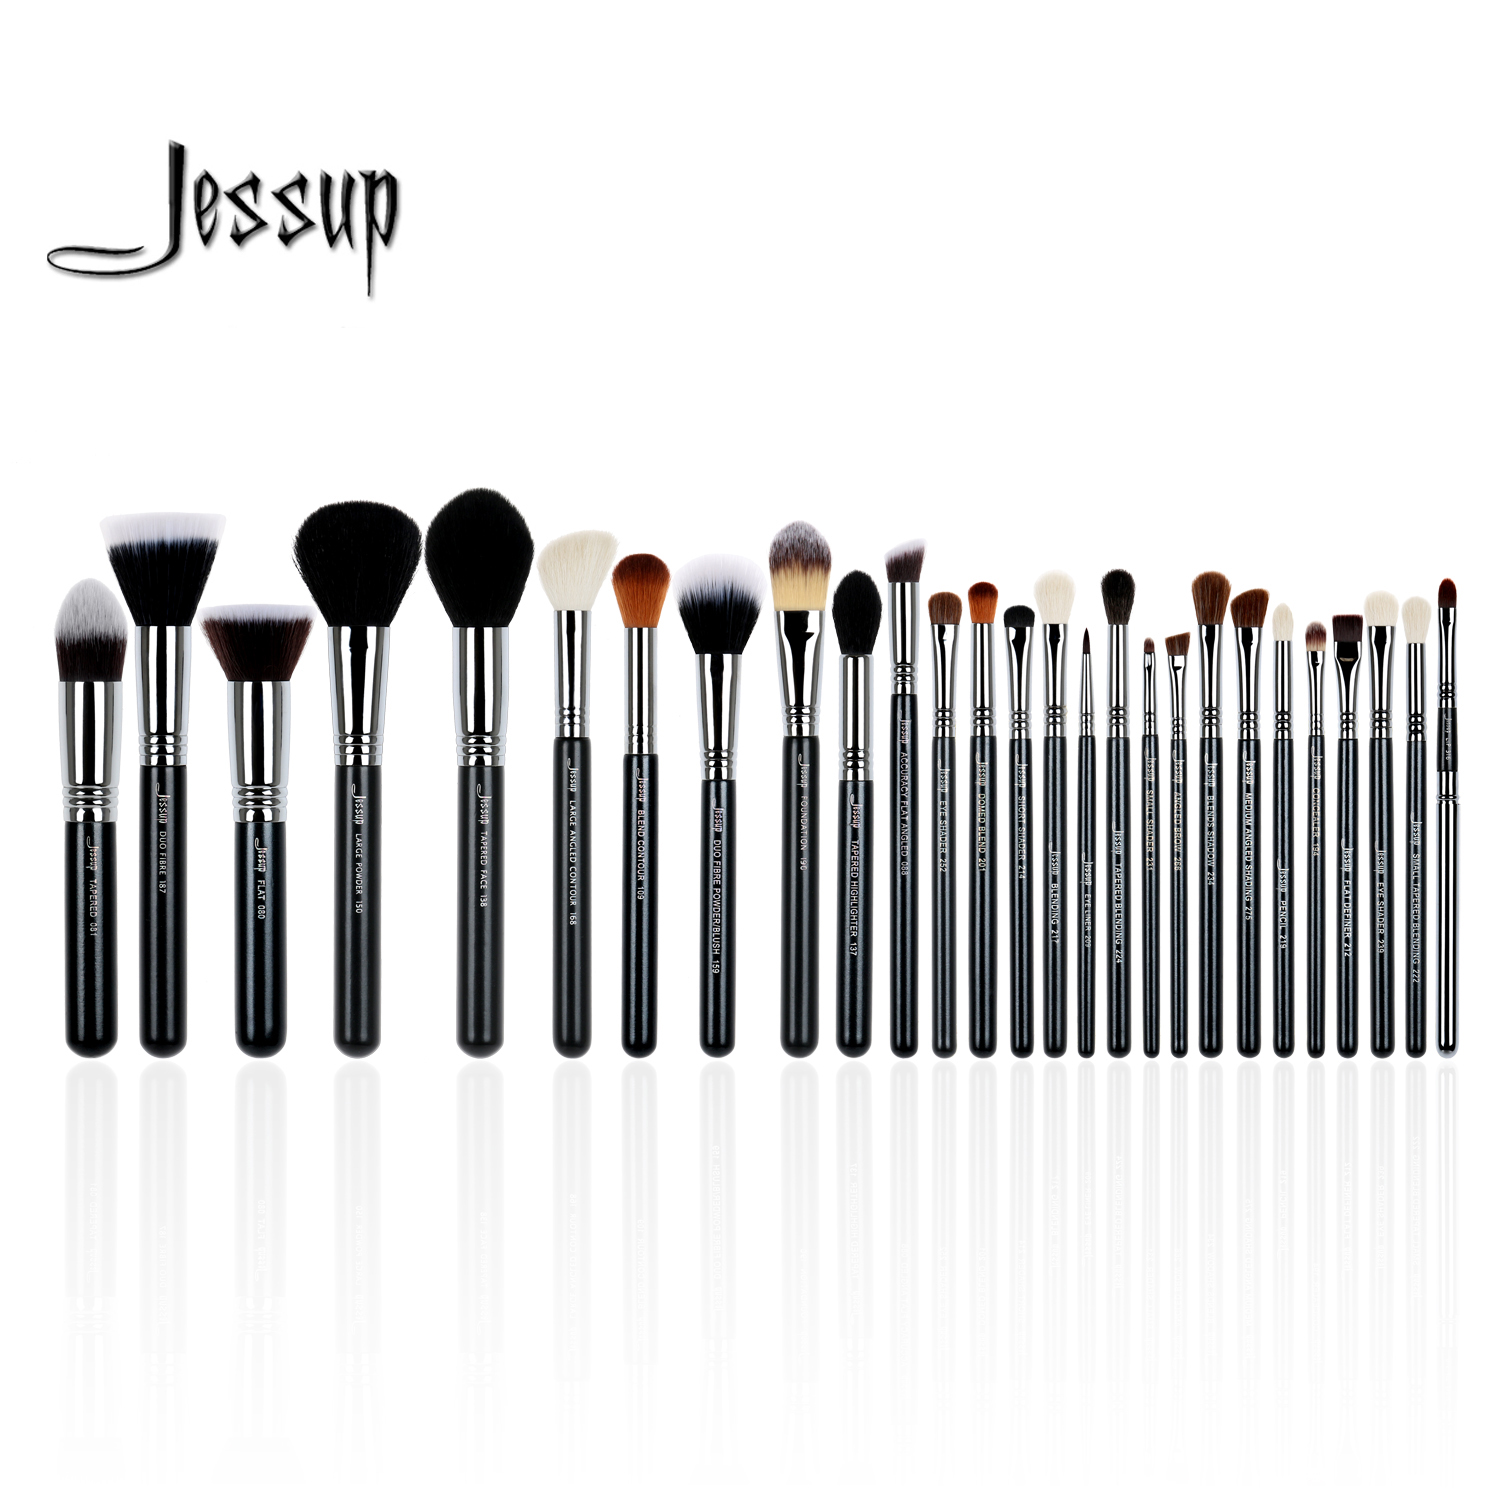 Jessup ensemble 27 pcs Ensemble Professionnel Maquillage Brush Set Beauté Eye Foundation Visage Ombre Rouges À Lèvres Poudre Make Up Kit Outils t133